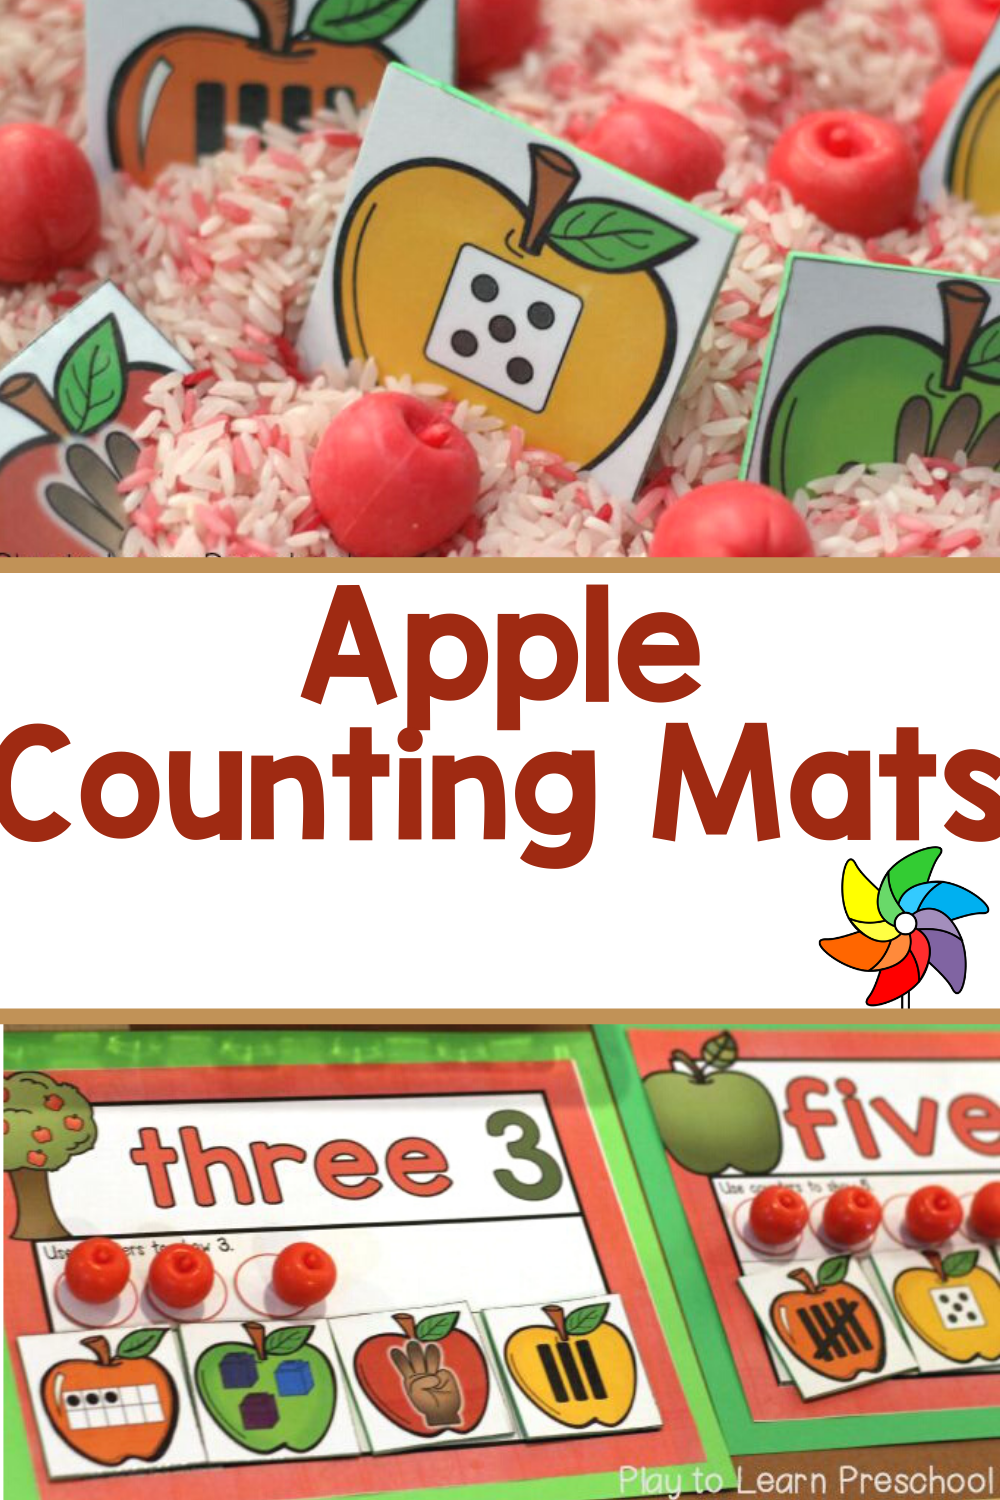 Apple Counting Mats Visualizing Numbers Preschool Apple Activities Fall Preschool Activities Apple Activities [ 1500 x 1000 Pixel ]